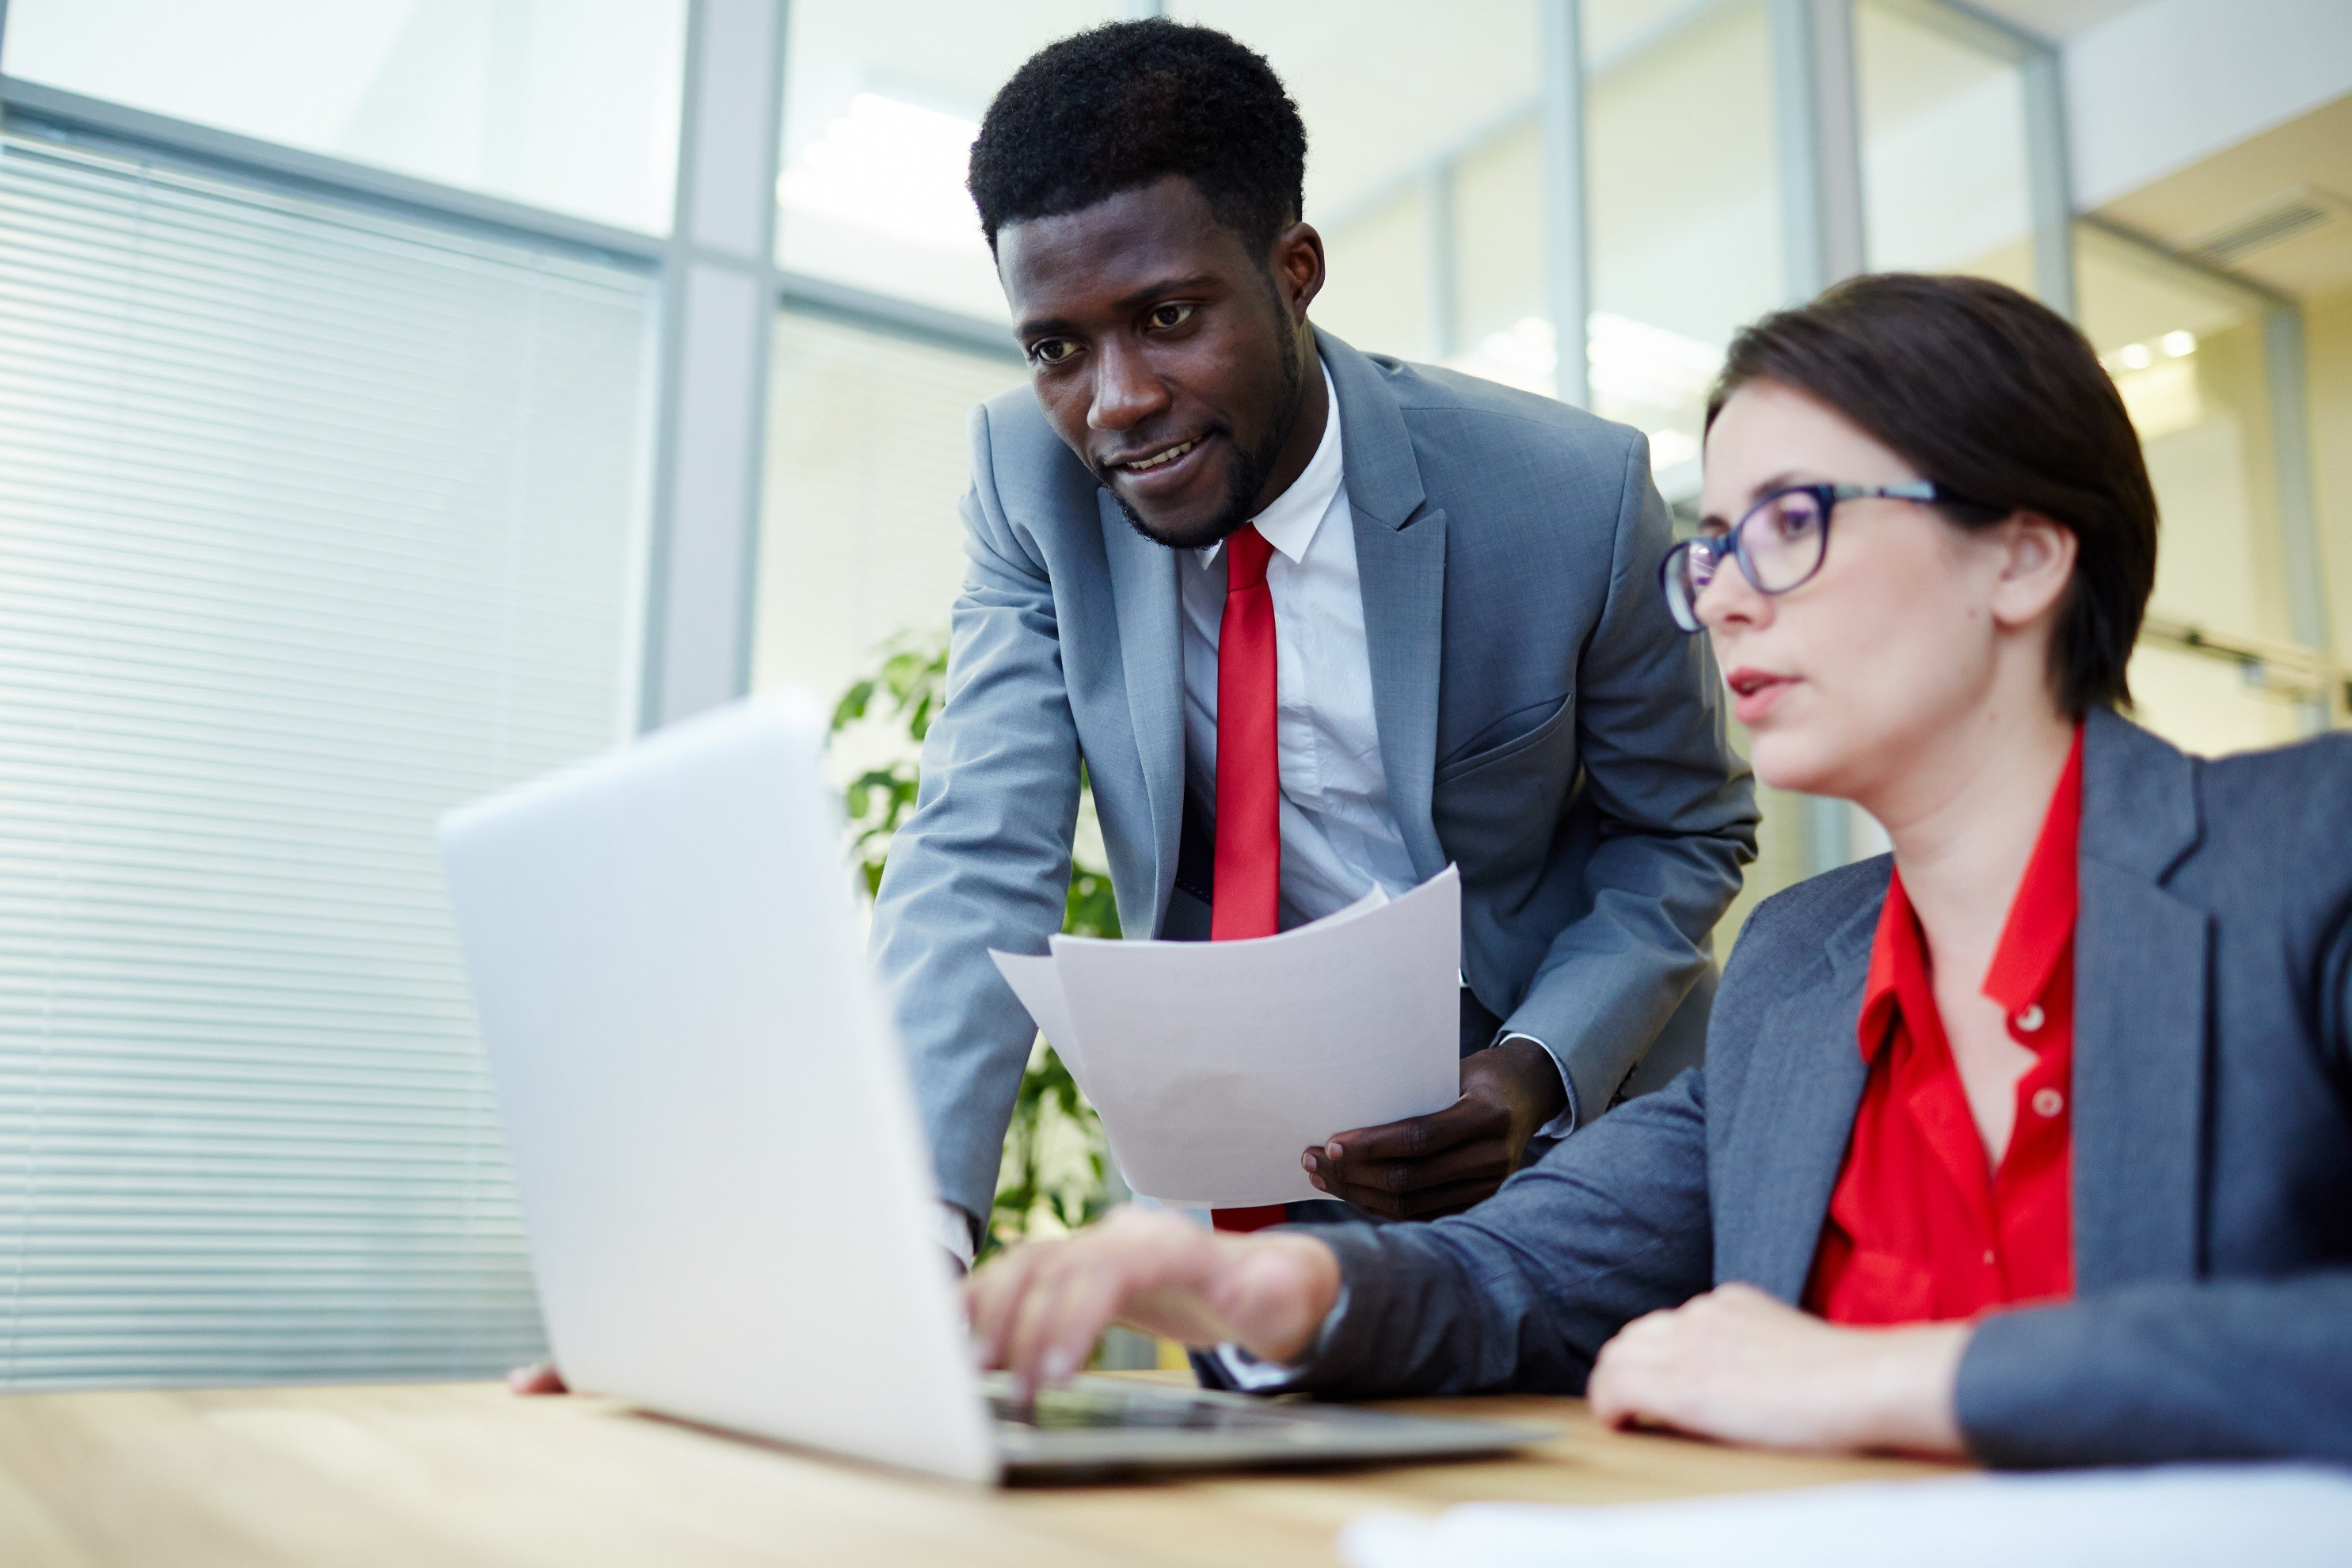 USAA-Member-Community-Two-People-At-Office-small.jpg